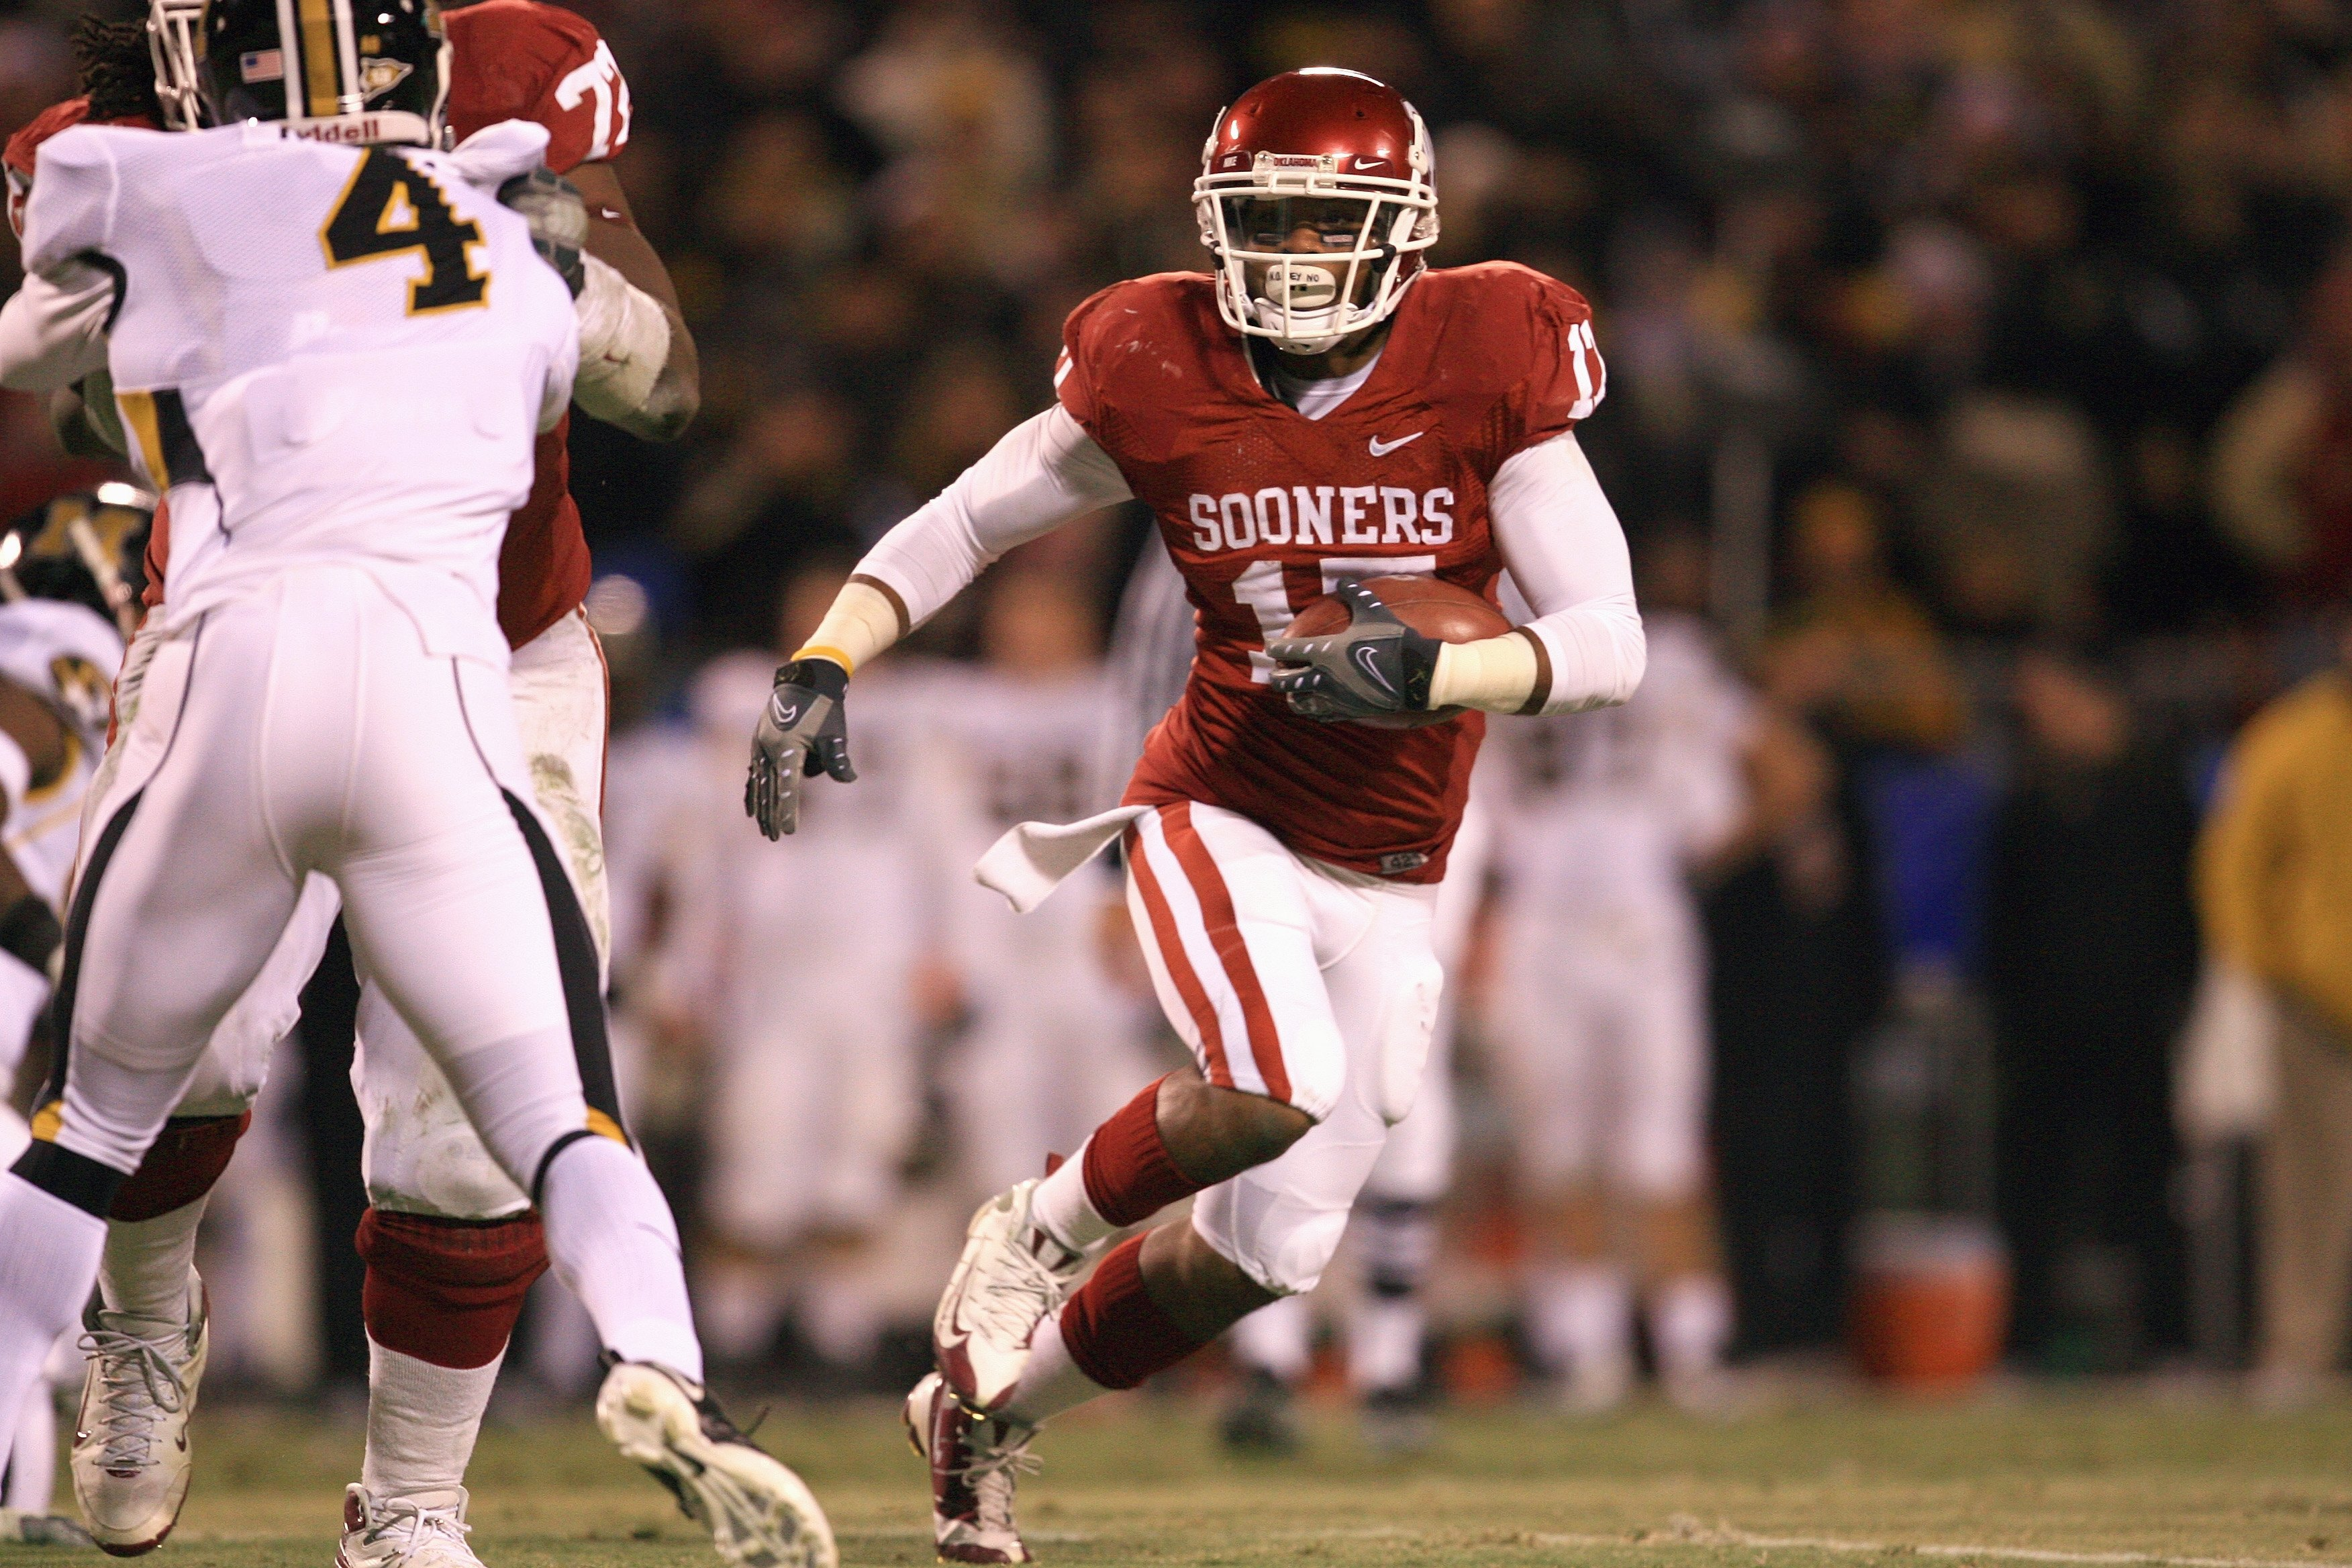 KANSAS CITY, MO - DECEMBER 06:  Mossis Madu #17 of the Oklahoma Sooners carries the ball during the Big 12 Championship game against the Missouri Tigers on December 6, 2008 at Arrowhead Stadium in Kansas City, Missouri. (Photo by Jamie Squire/Getty Images